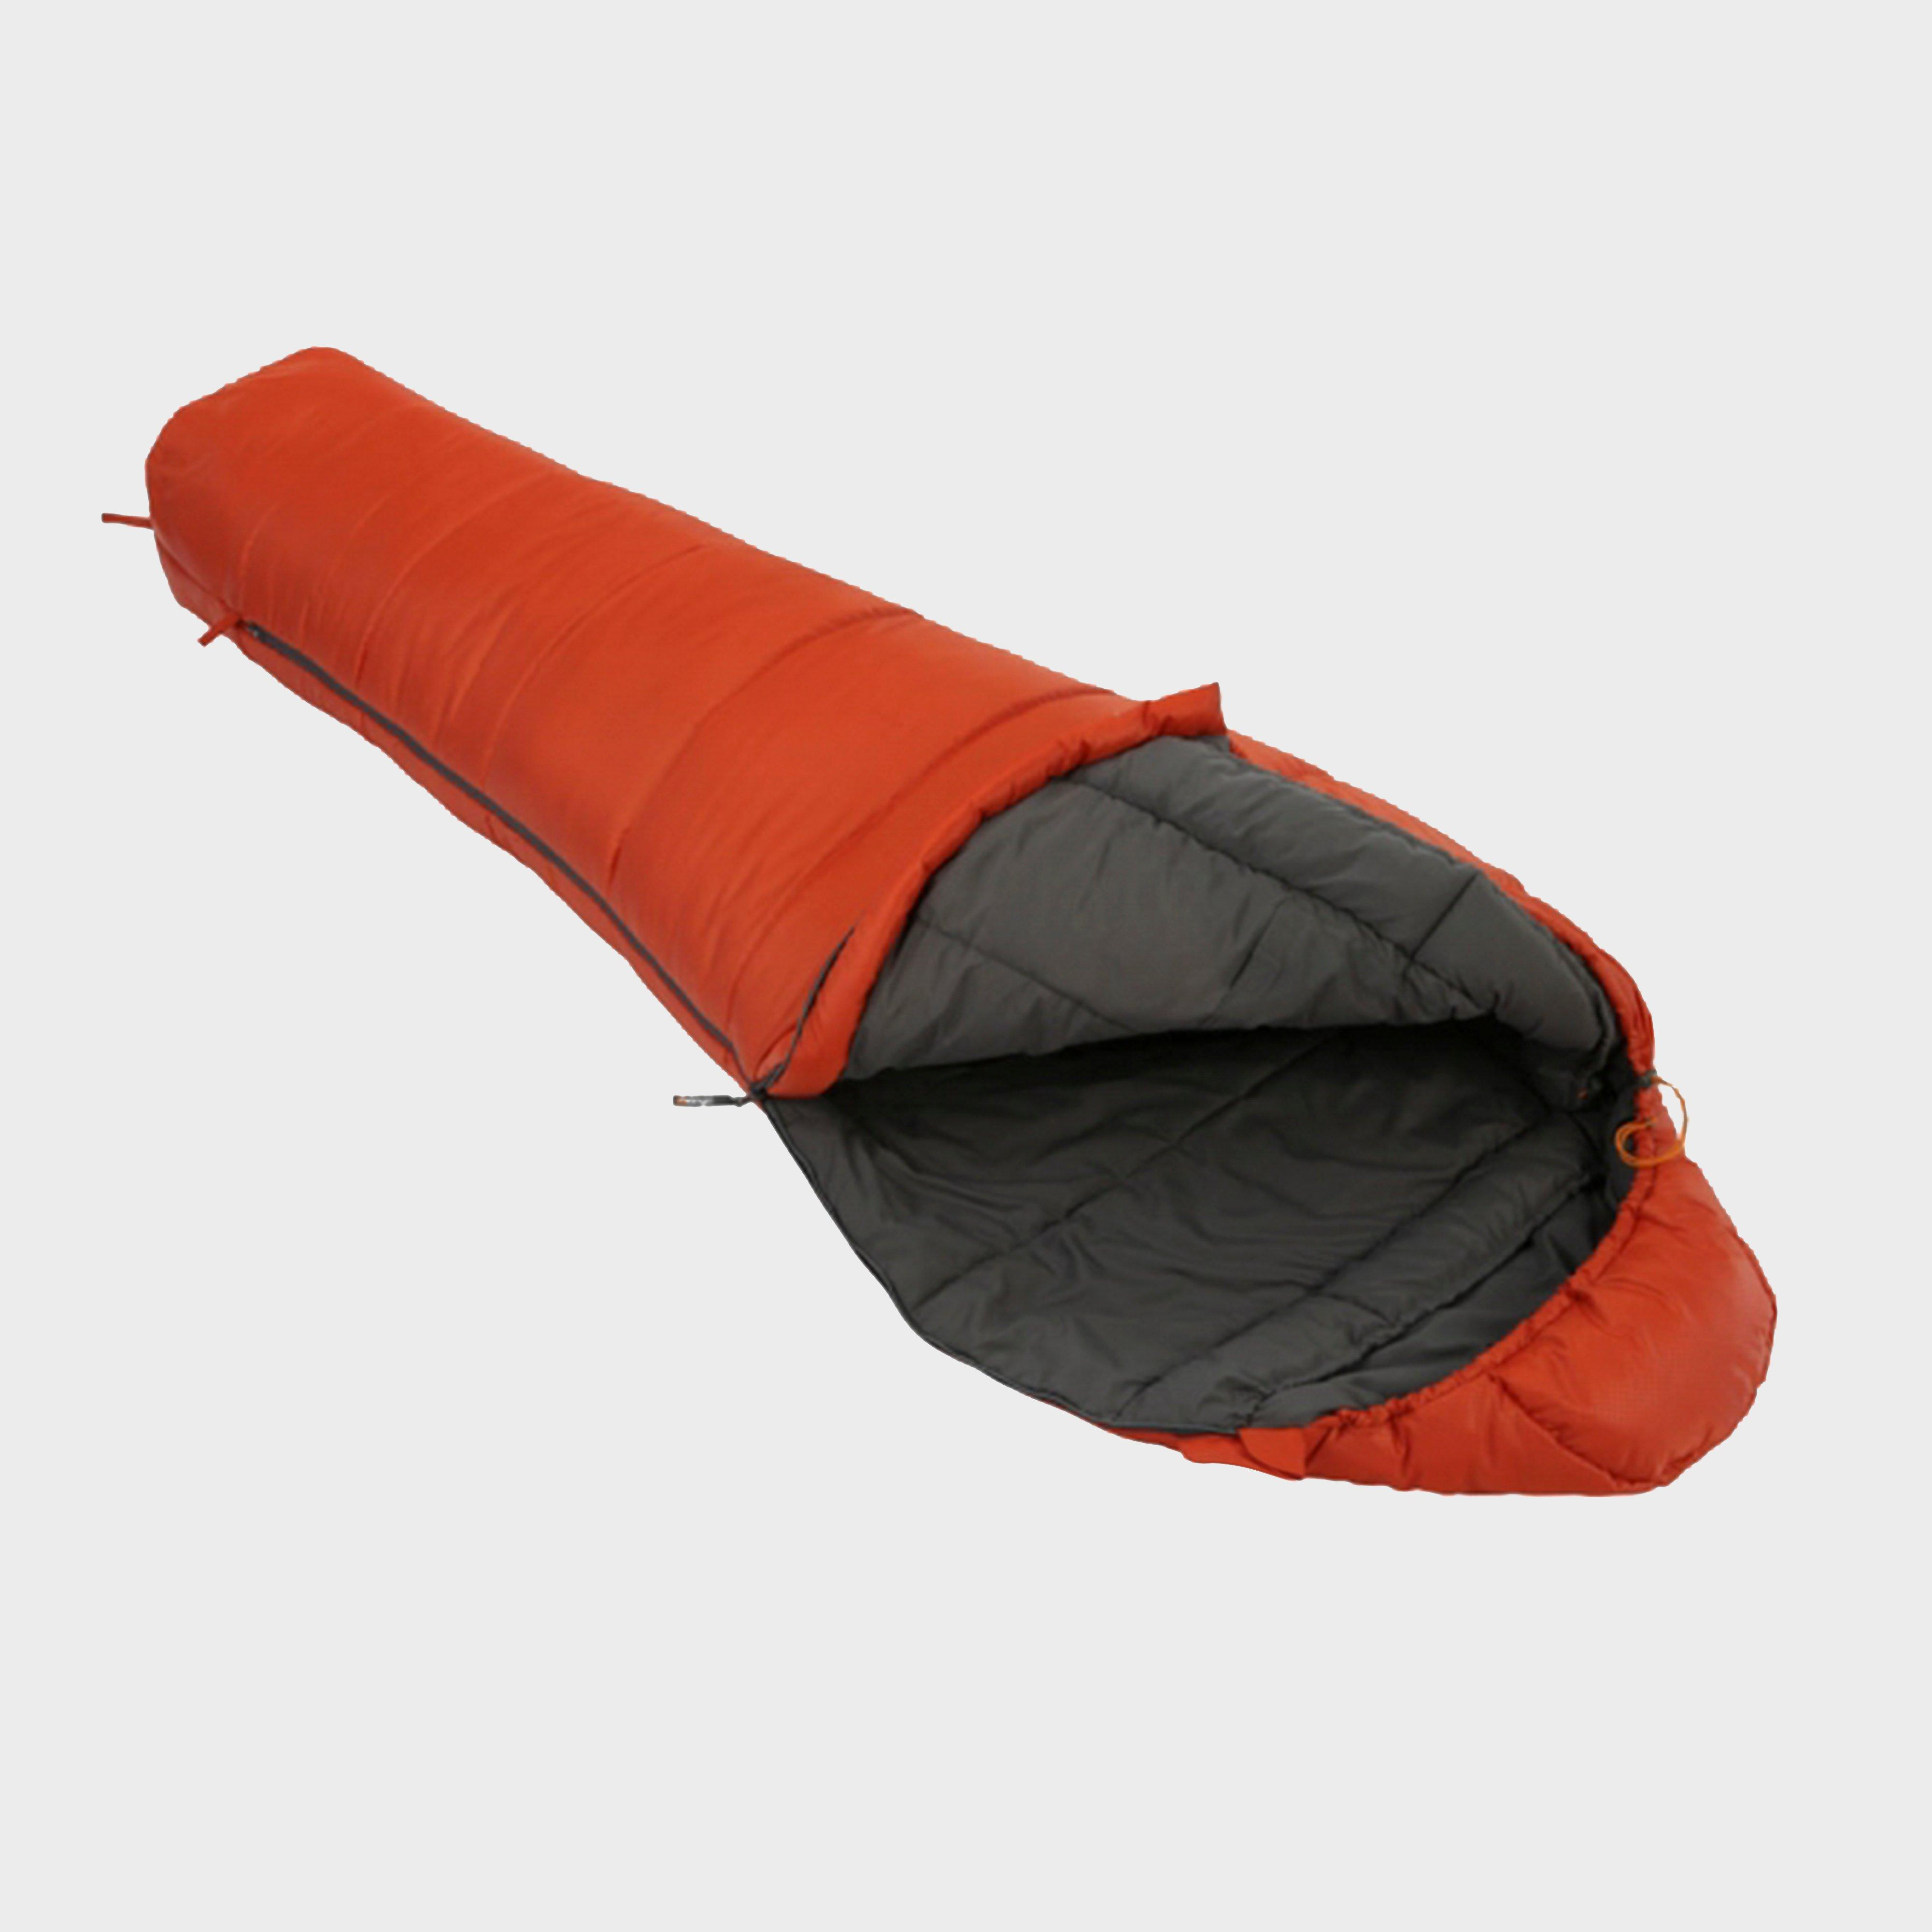 Vango Vango Nitestar Alpha 225 Sleeping Bag - Orange, Orange